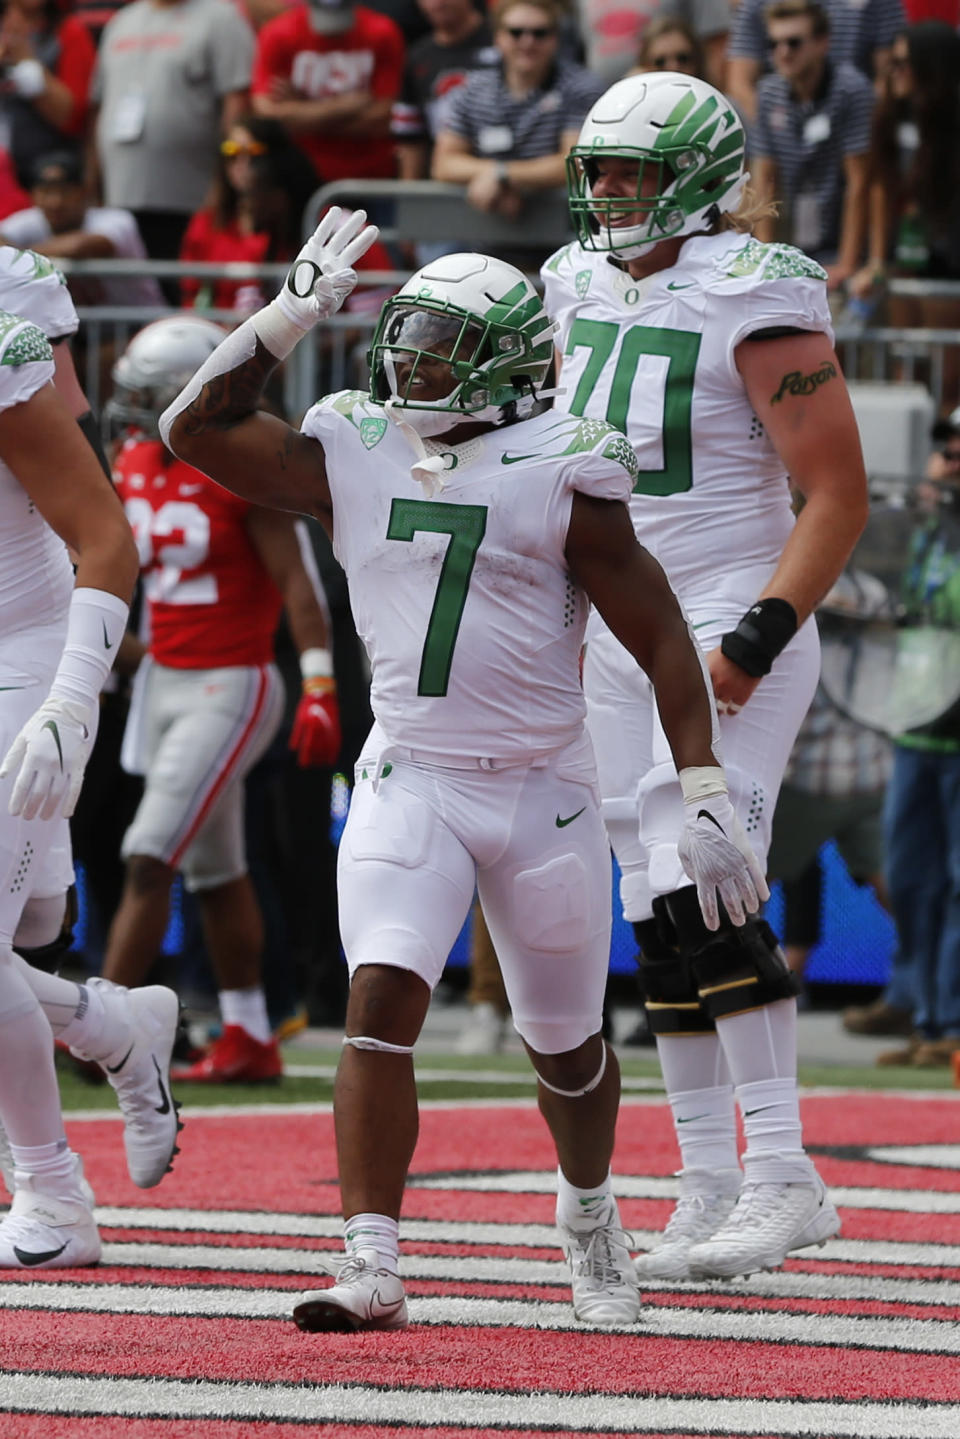 Oregon running back CJ Verdell celebrates his touchdown against Ohio State during the first half of an NCAA college football game Saturday, Sept. 11, 2021, in Columbus, Ohio. (AP Photo/Jay LaPrete)